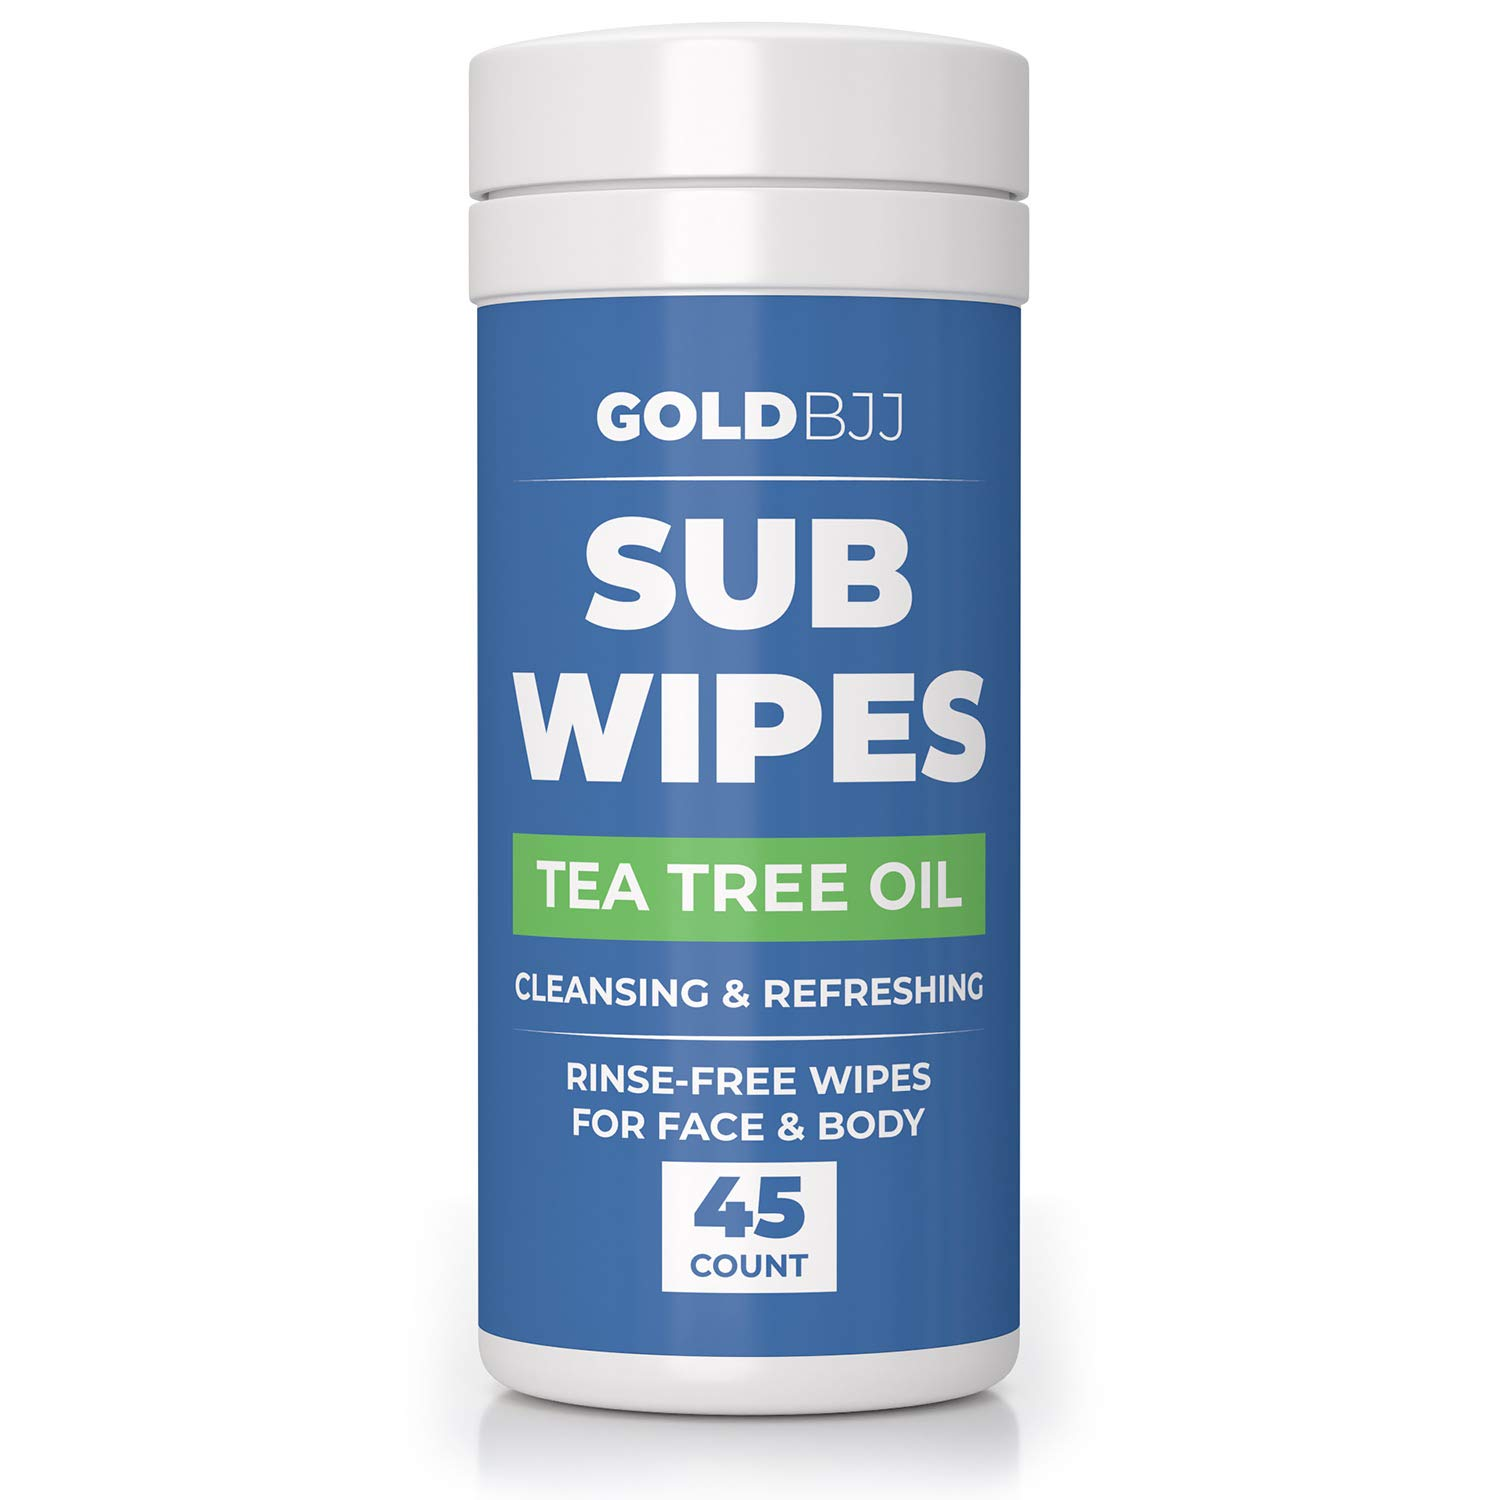 Gold BJJ Jiu Jitsu Wipes [XL 45 Count] Tea Tree Oil Face and Body Wipe - Cleansing Skin Defense for Martial Arts & Wrestling by Gold BJJ